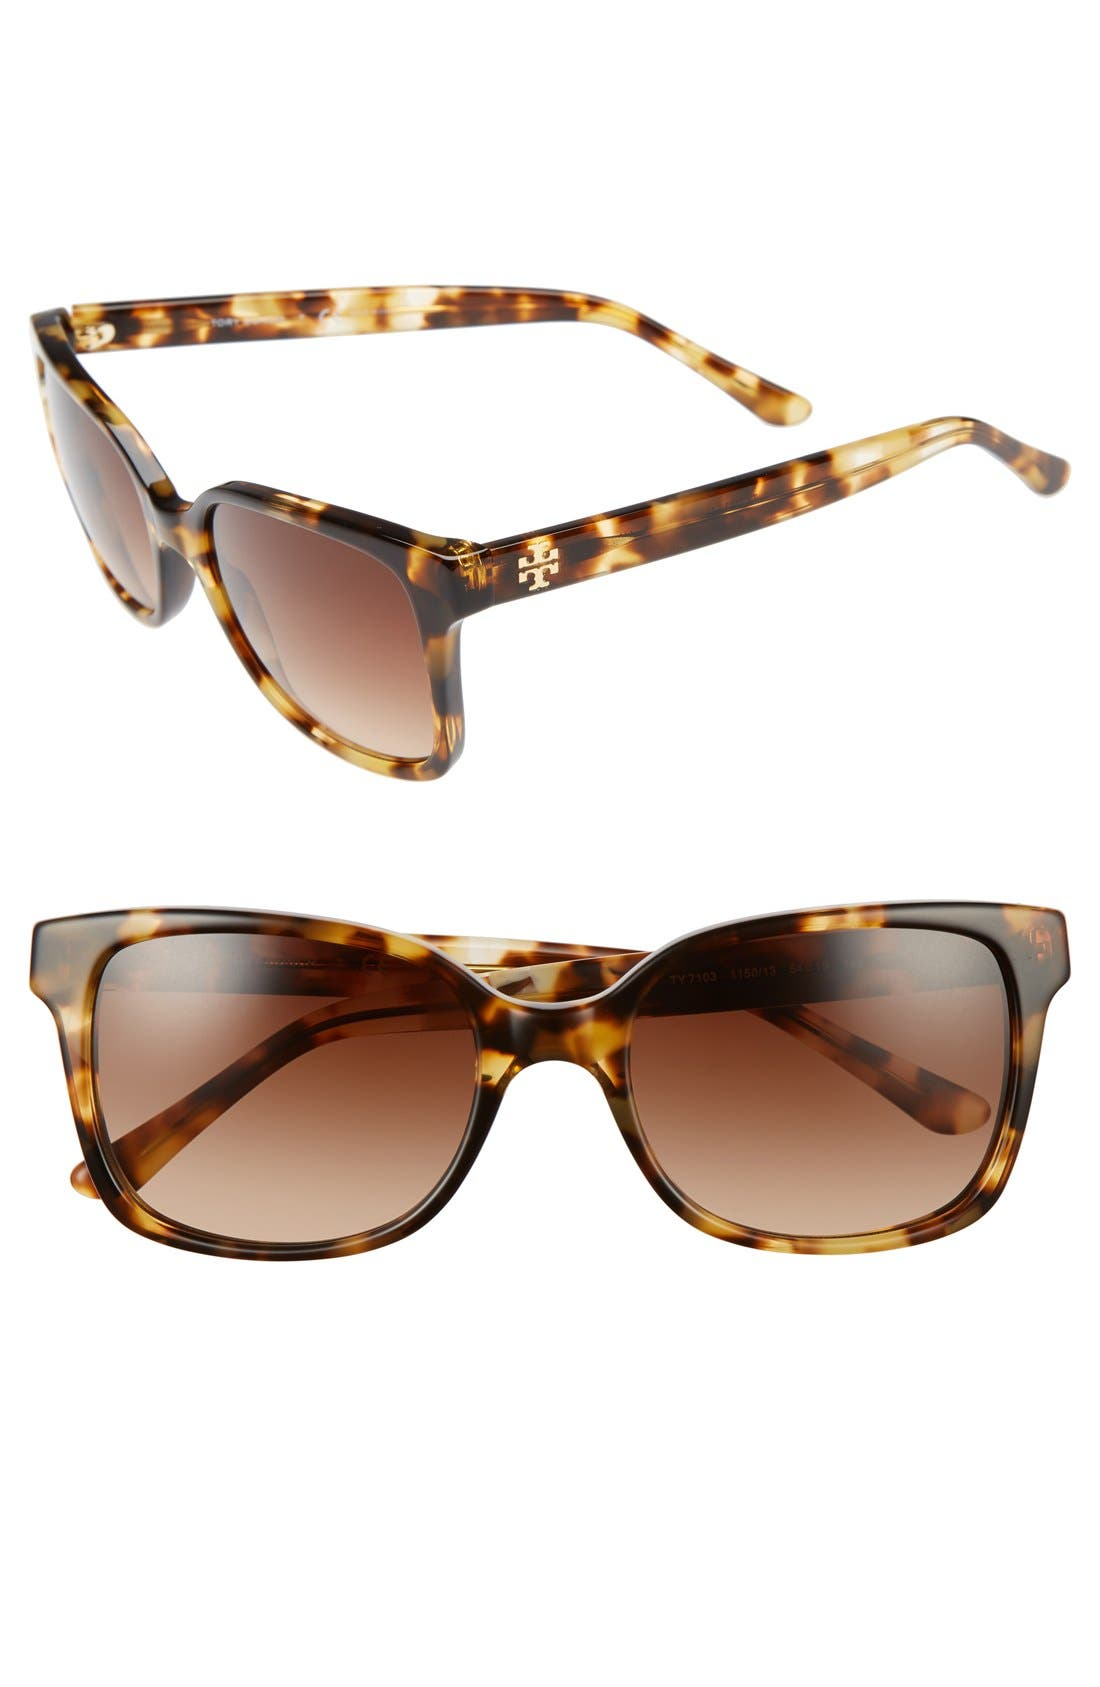 Main Image - Tory Burch 54mm Sunglasses